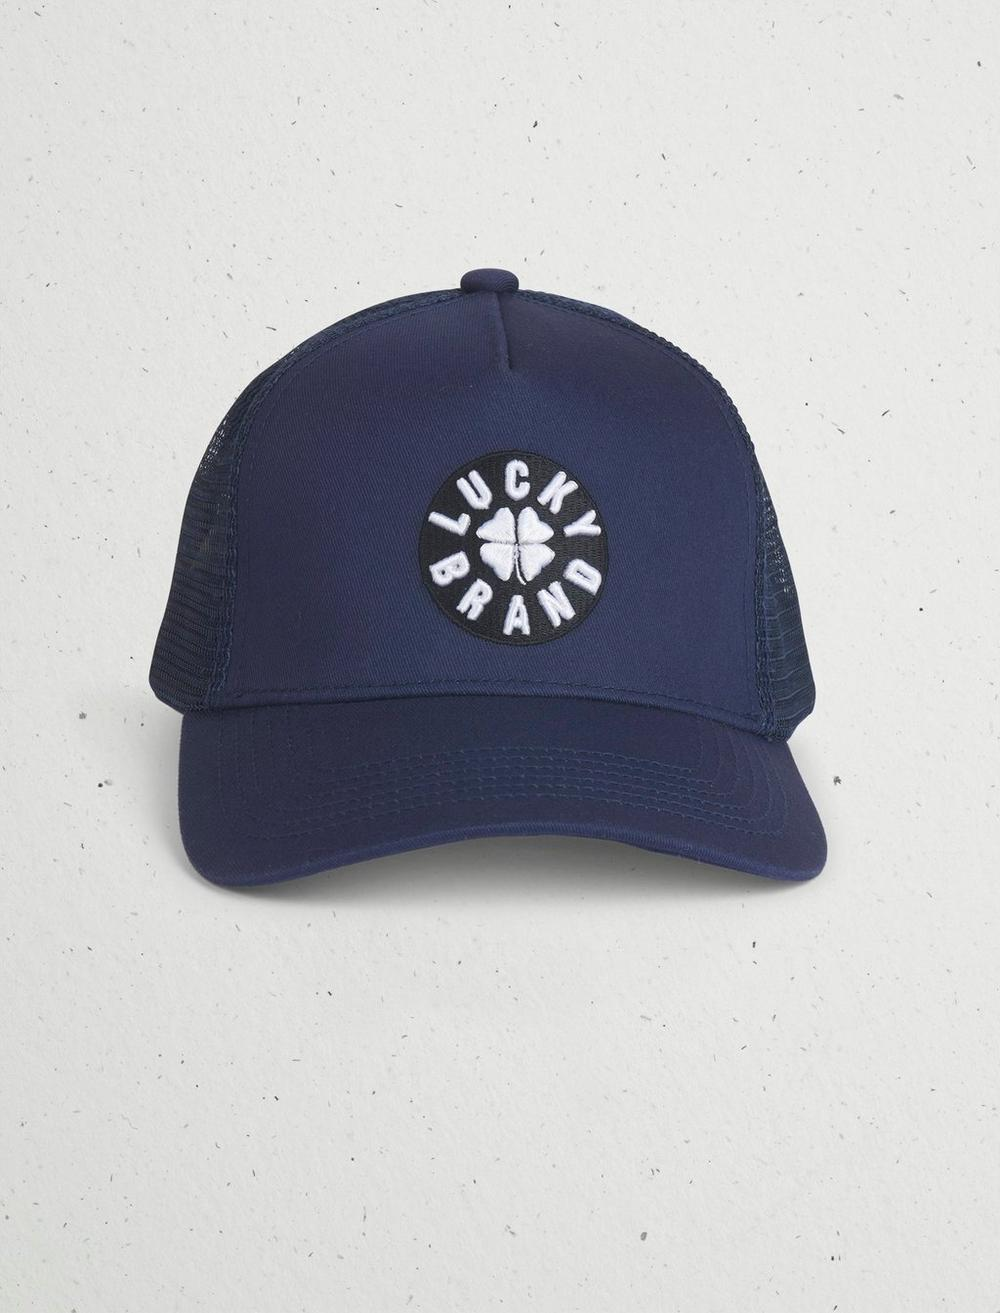 LUCKY PATCH TRUCKER HAT, image 1